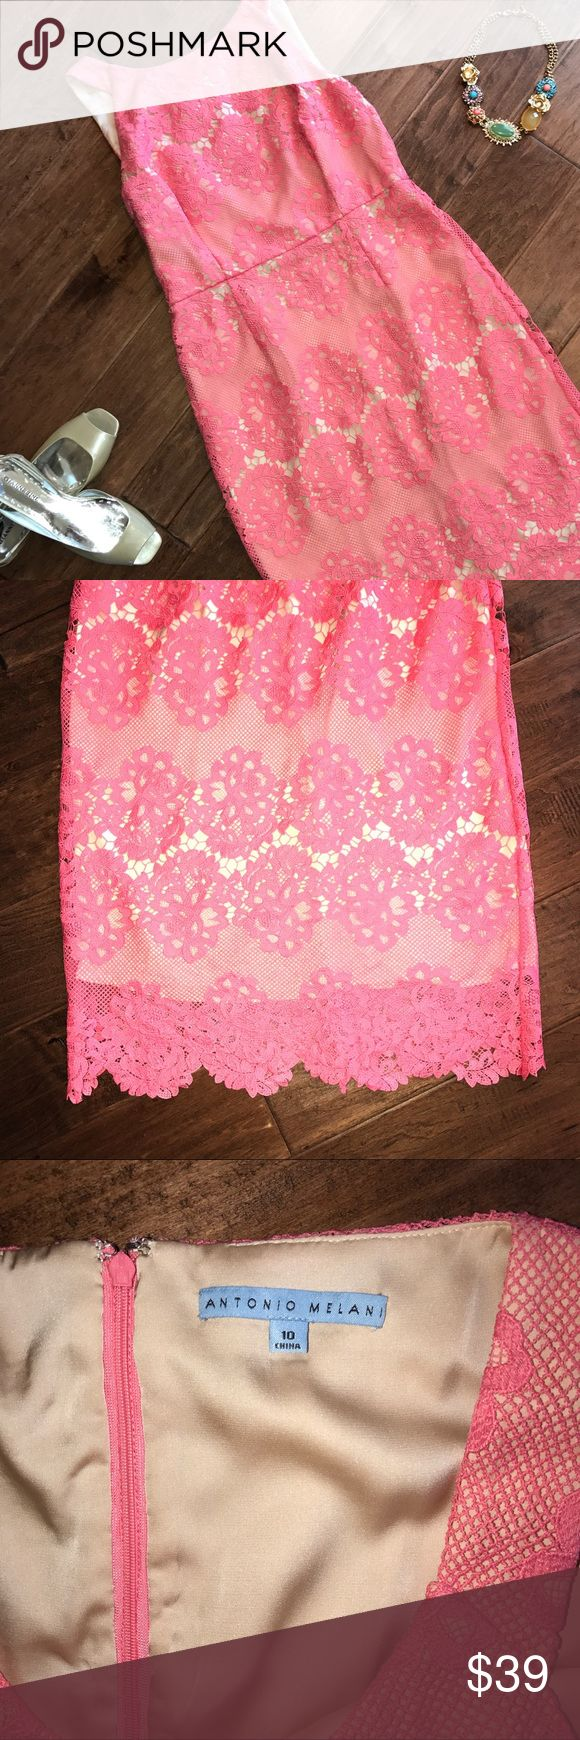 Antonio Melani Lace Overlay Maxi Dress Antonio Melani Pink lace overlays a full length nude lining. In excellent condition. Back side zipper. ANTONIO MELANI Dresses Maxi